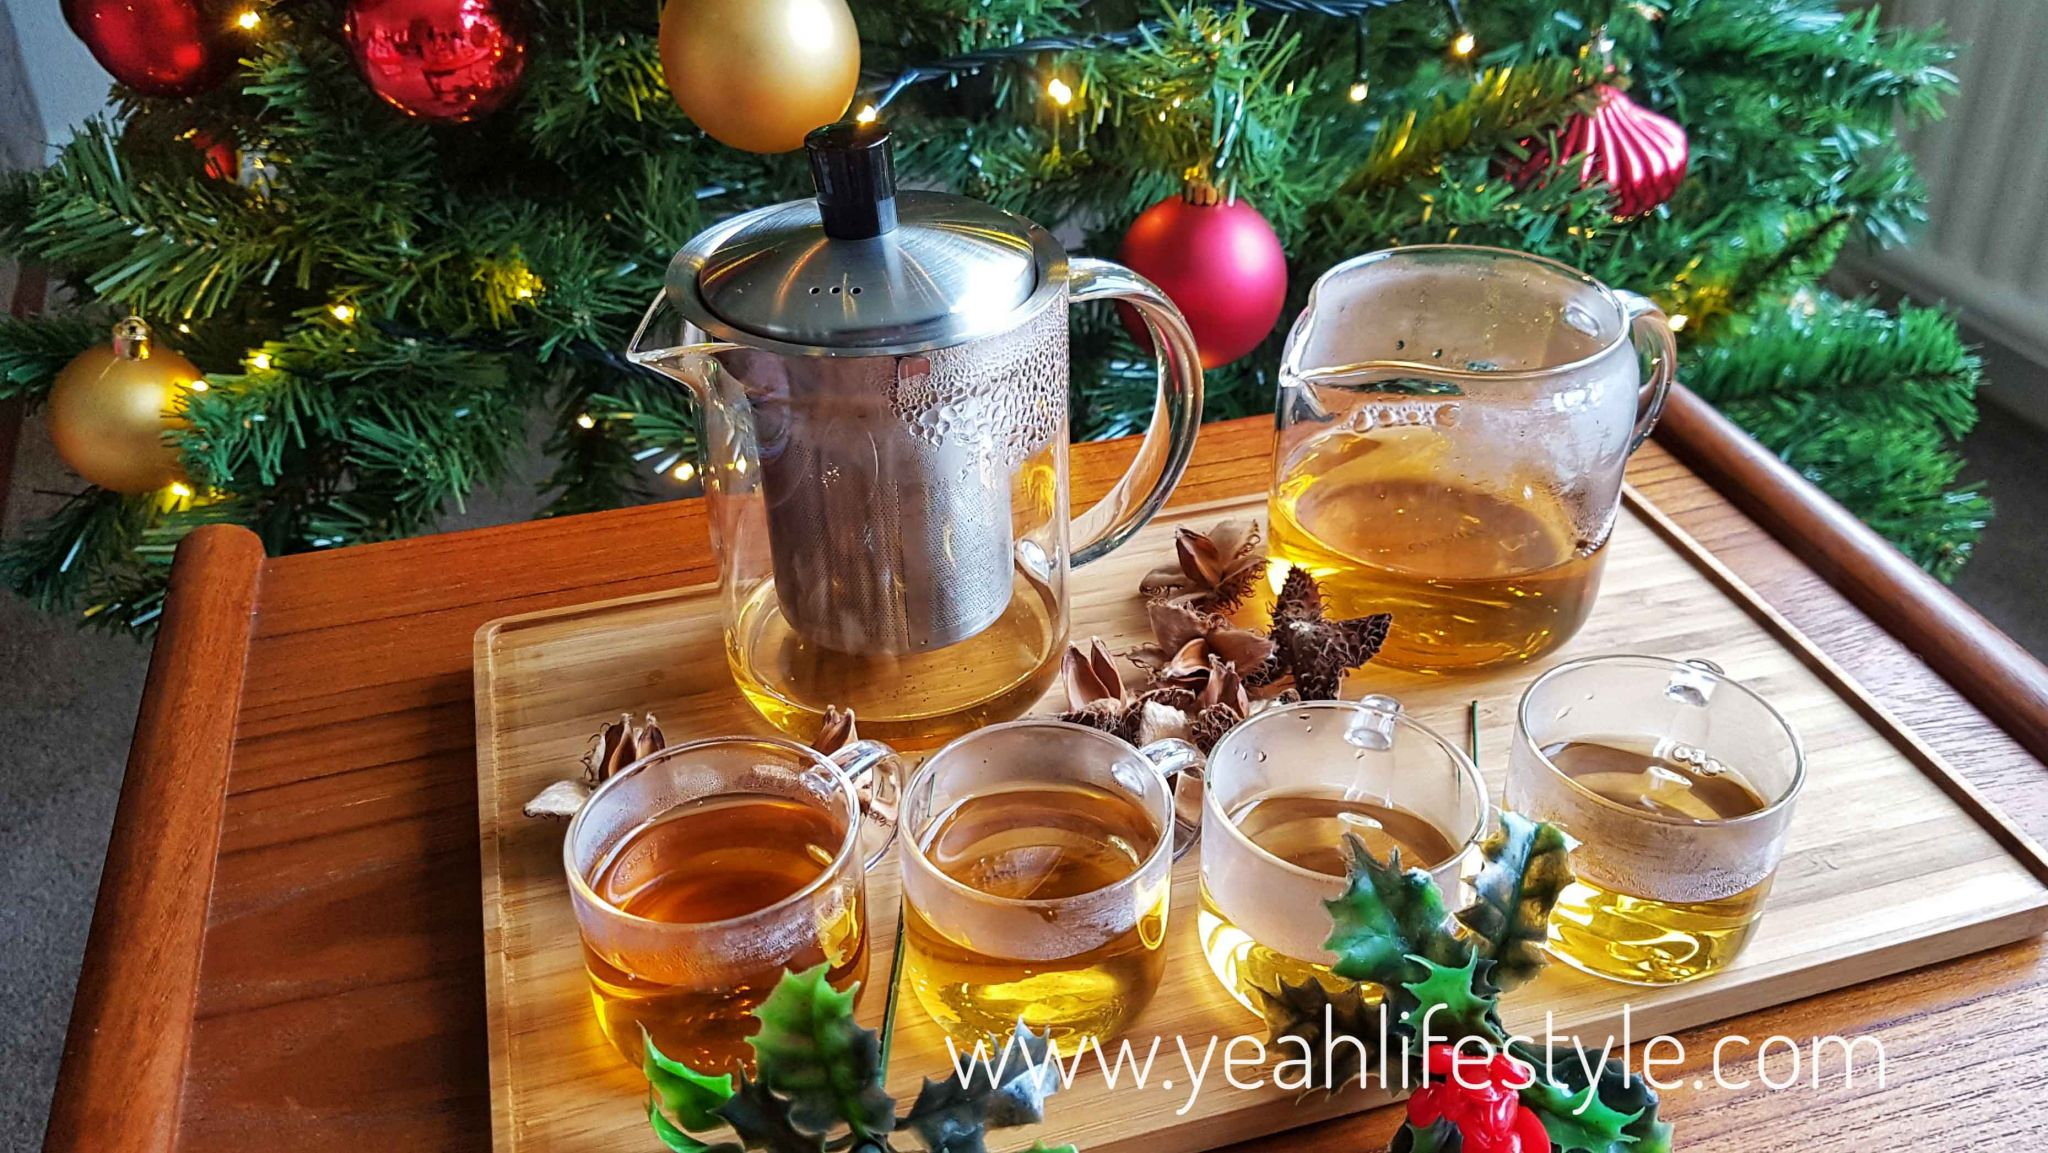 capacitea-master-collection-kungfu-chinese-tea-drinking-christmas- & capacitea-master-collection-kungfu-chinese-tea-drinking-christmas ...